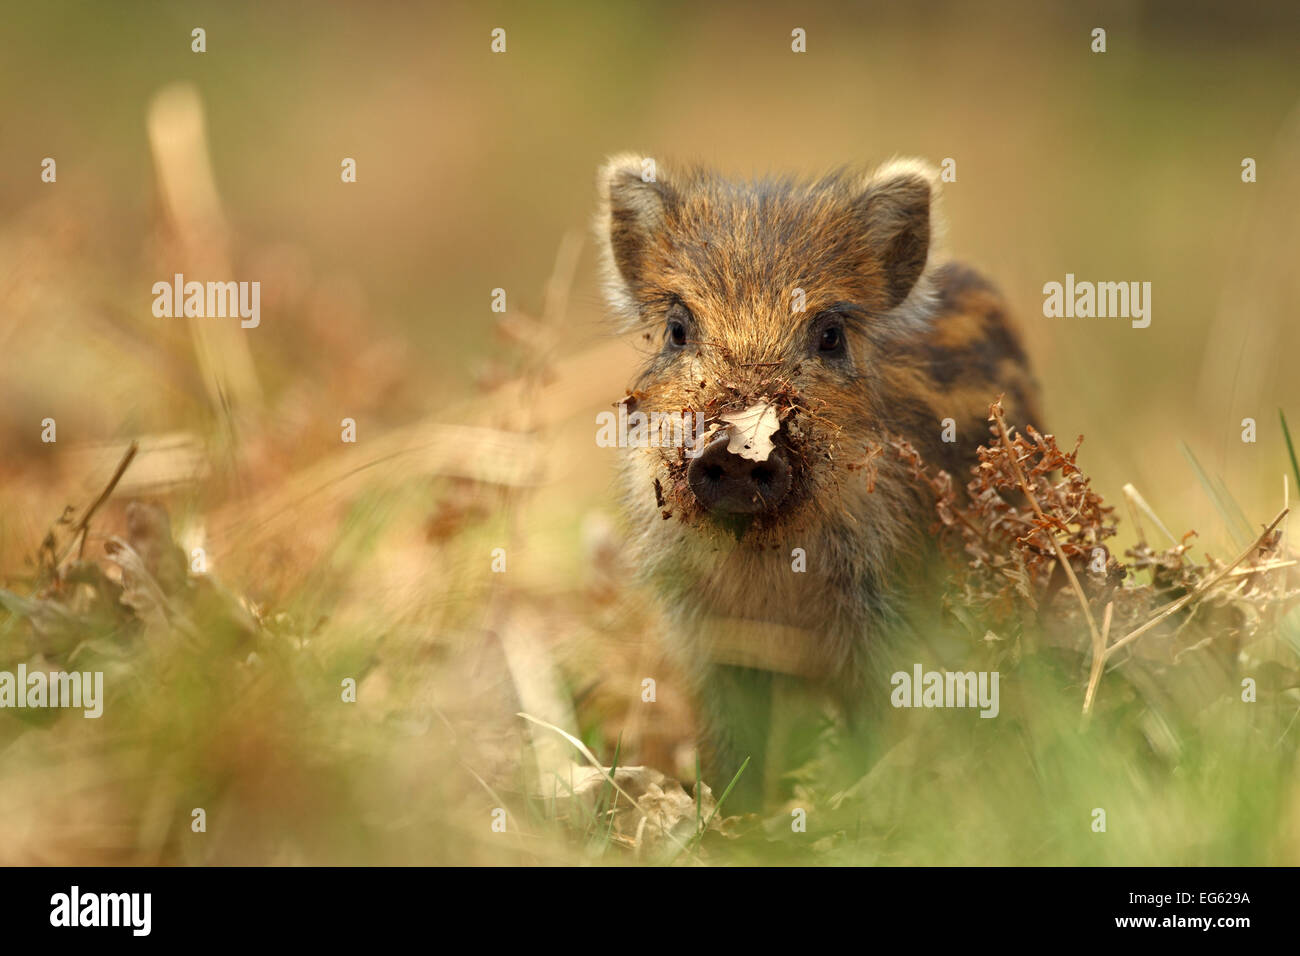 Wild boar piglet (Sus scrofa) with leaf stuck on its nose, Forest of Dean, Gloucestershire, England, UK, April. - Stock Image